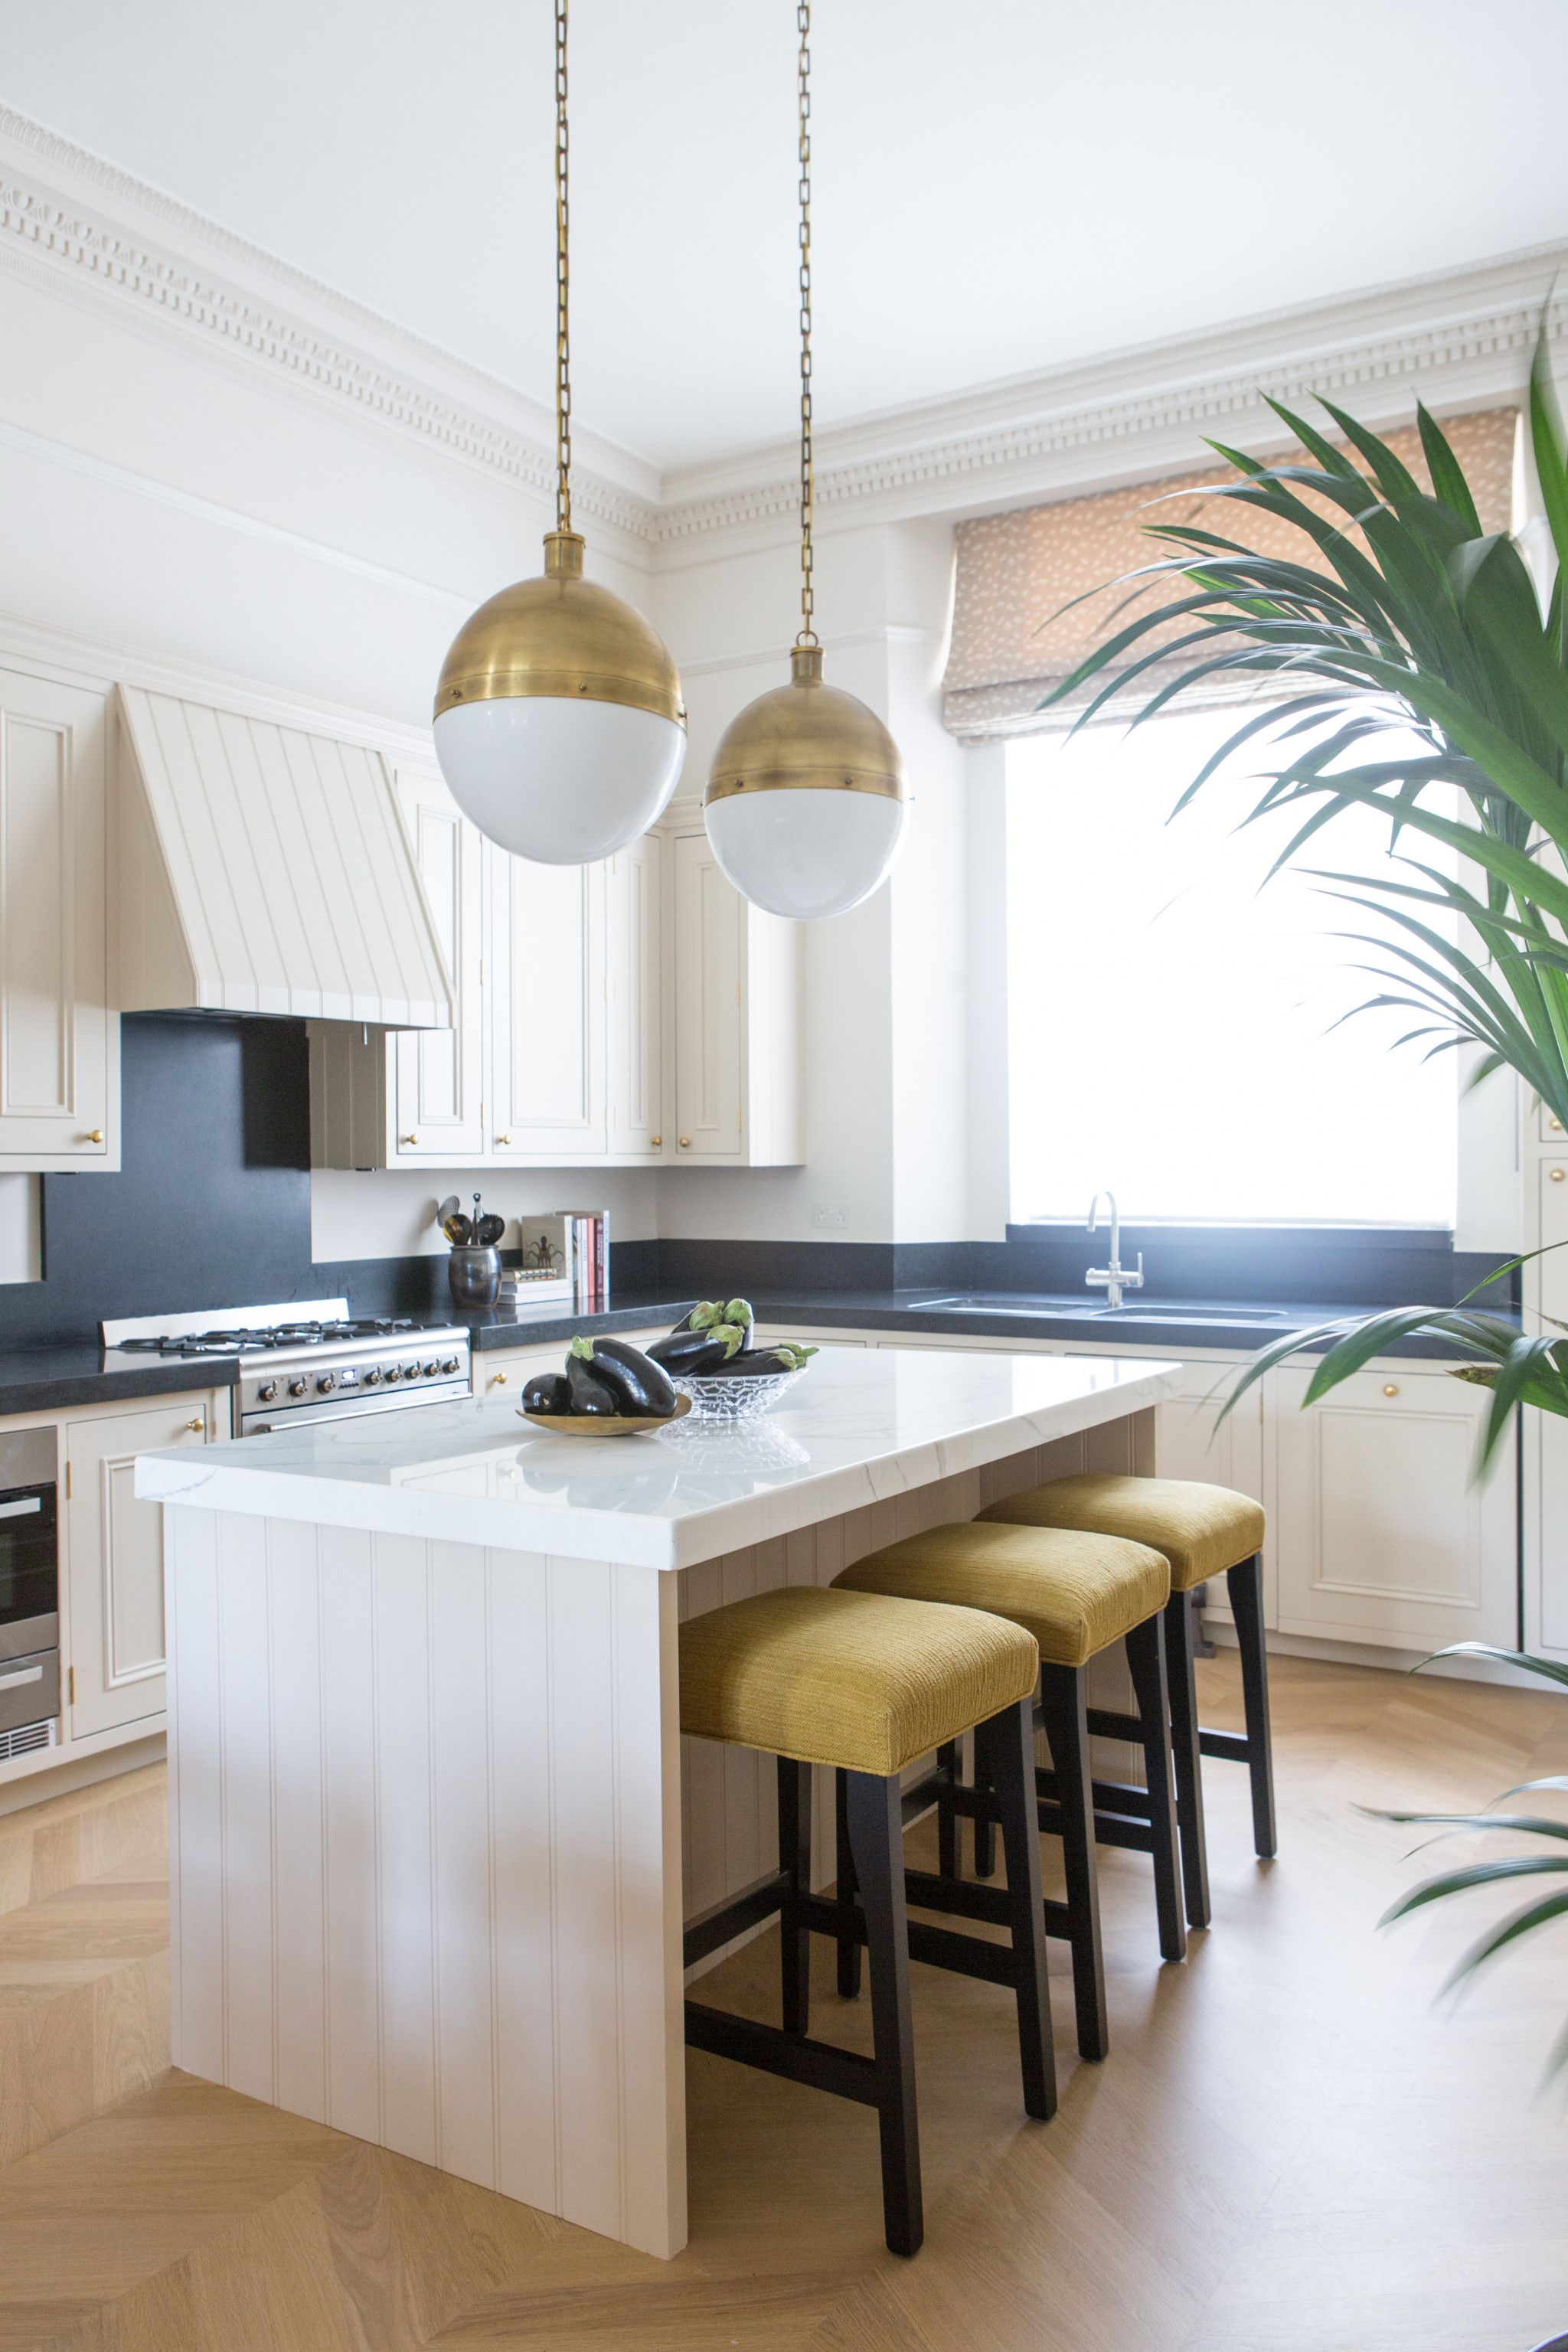 Interior design: professional London home with personal touches - Blog